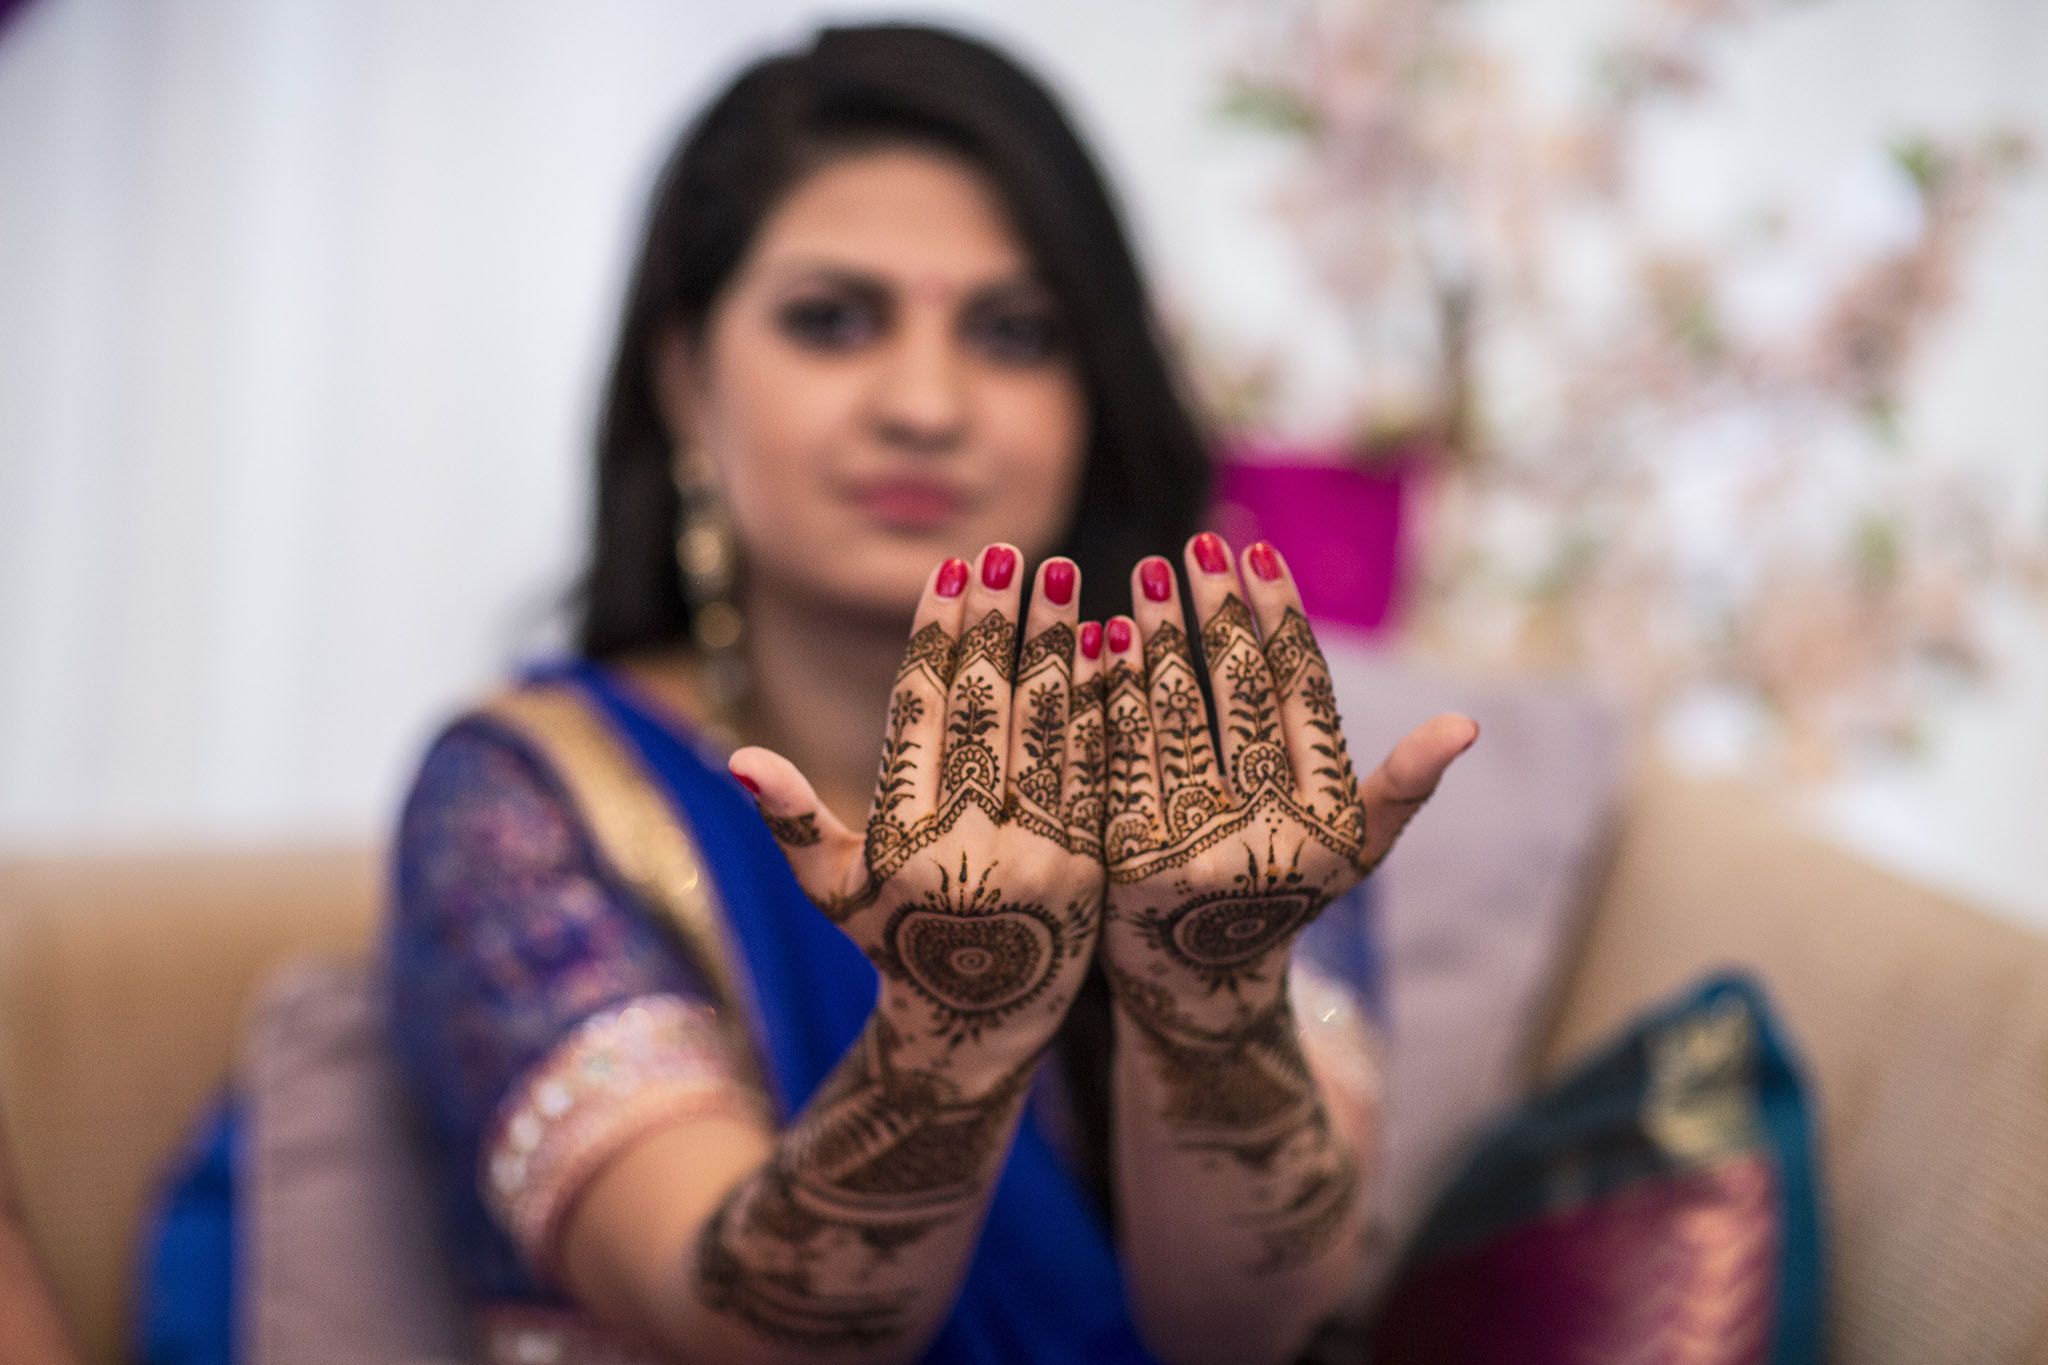 elizabethgphotography_kingslangley_hertfordshire_fineart_indian_wedding_mehndi_photography_jigna_bhuja_14.jpg